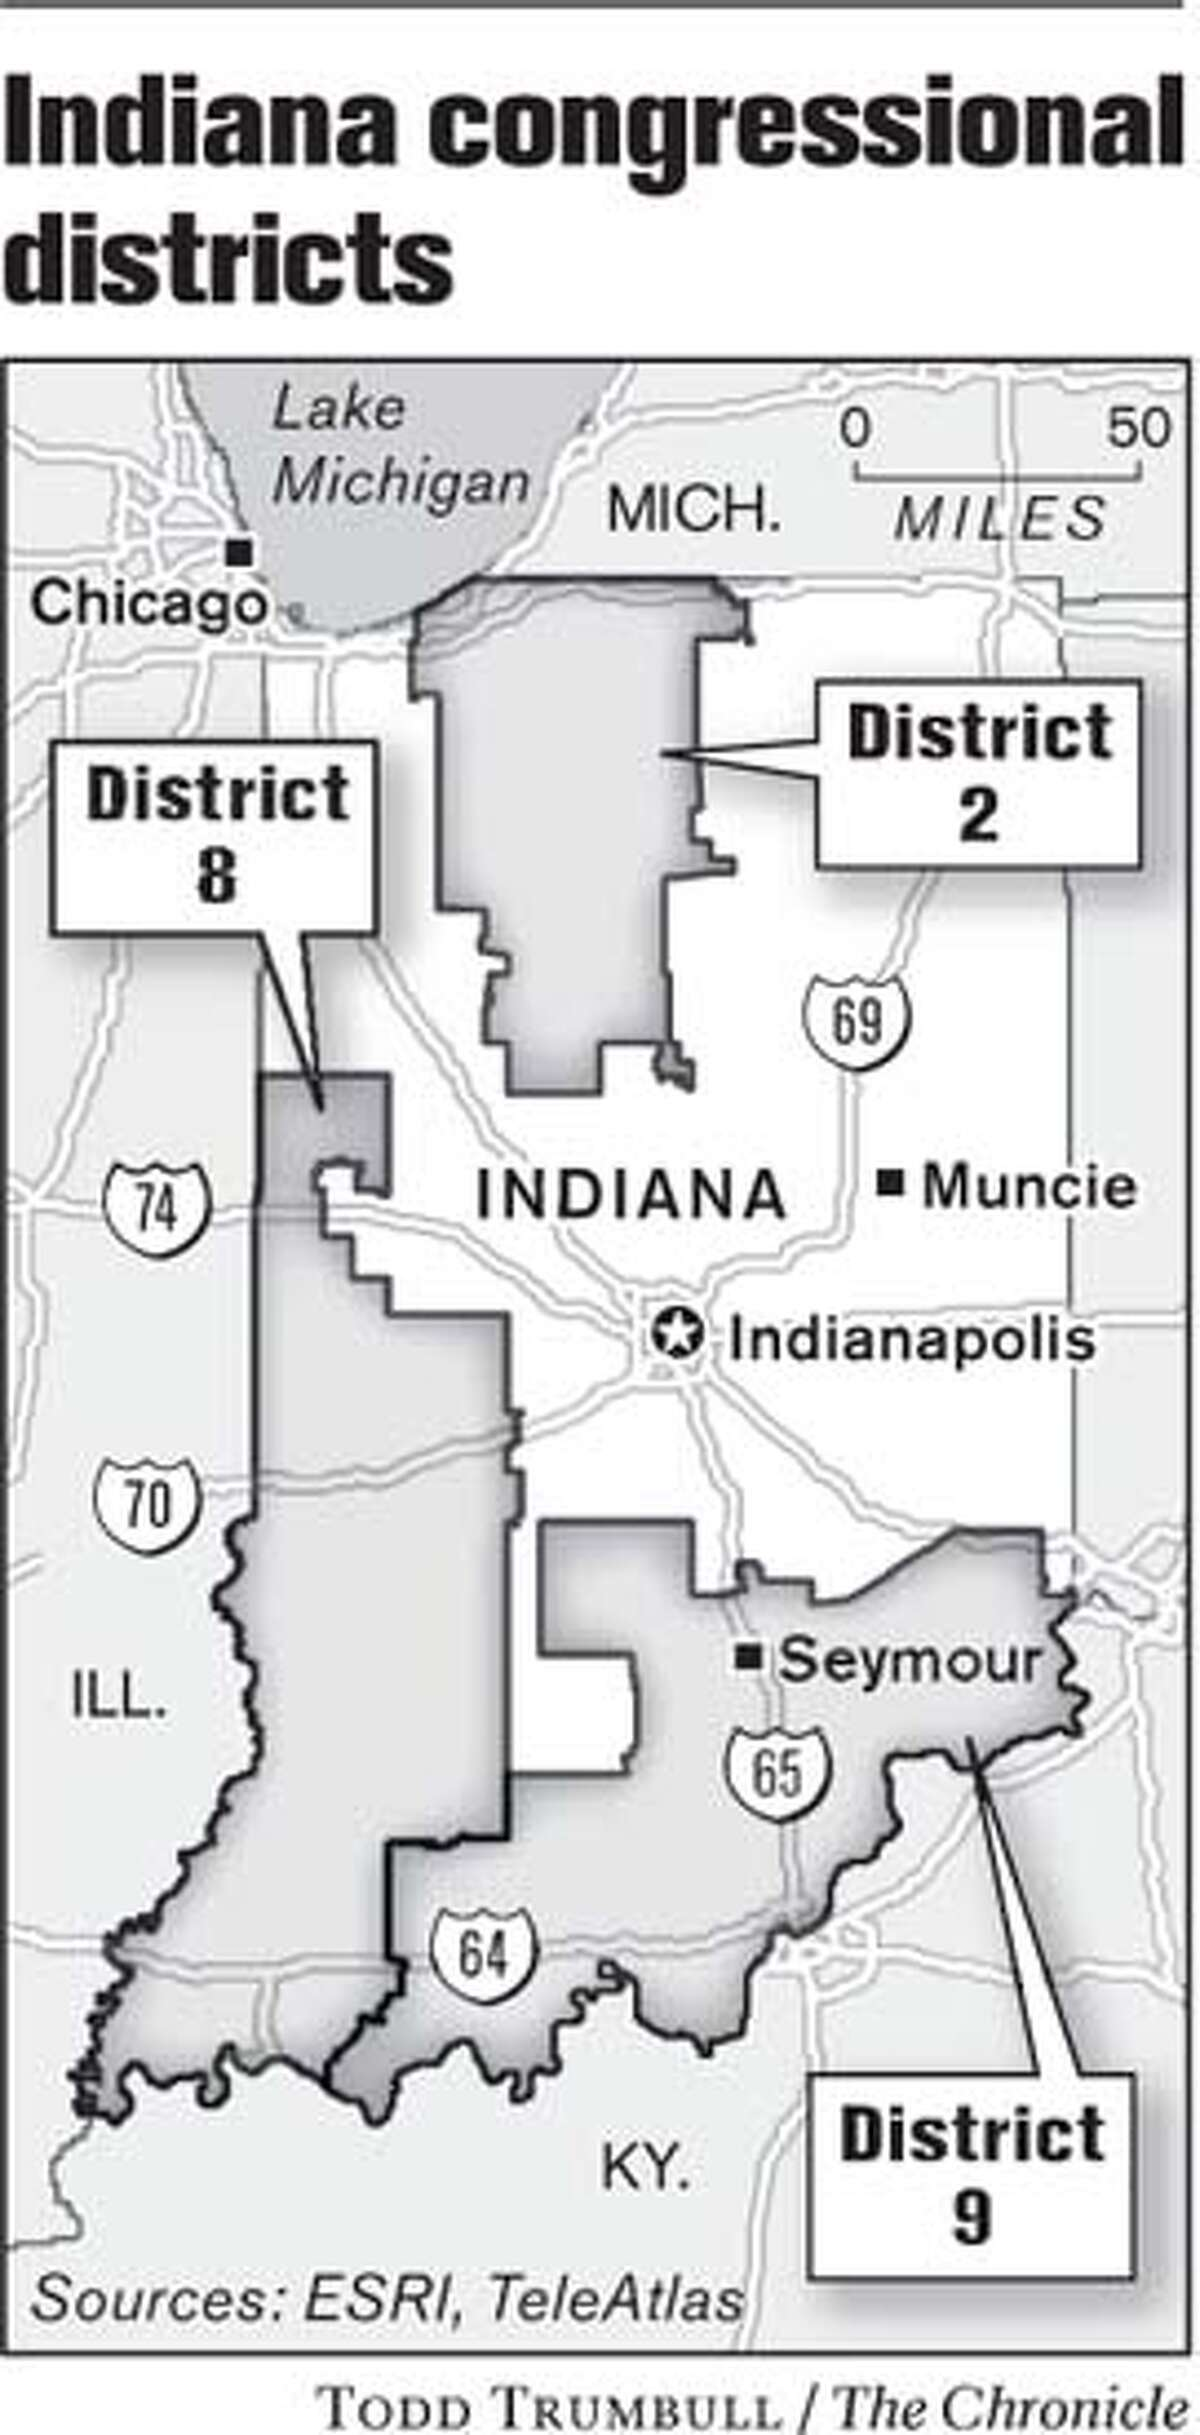 Indiana Congressional Districts. Chronicle graphic by Todd Trumbull